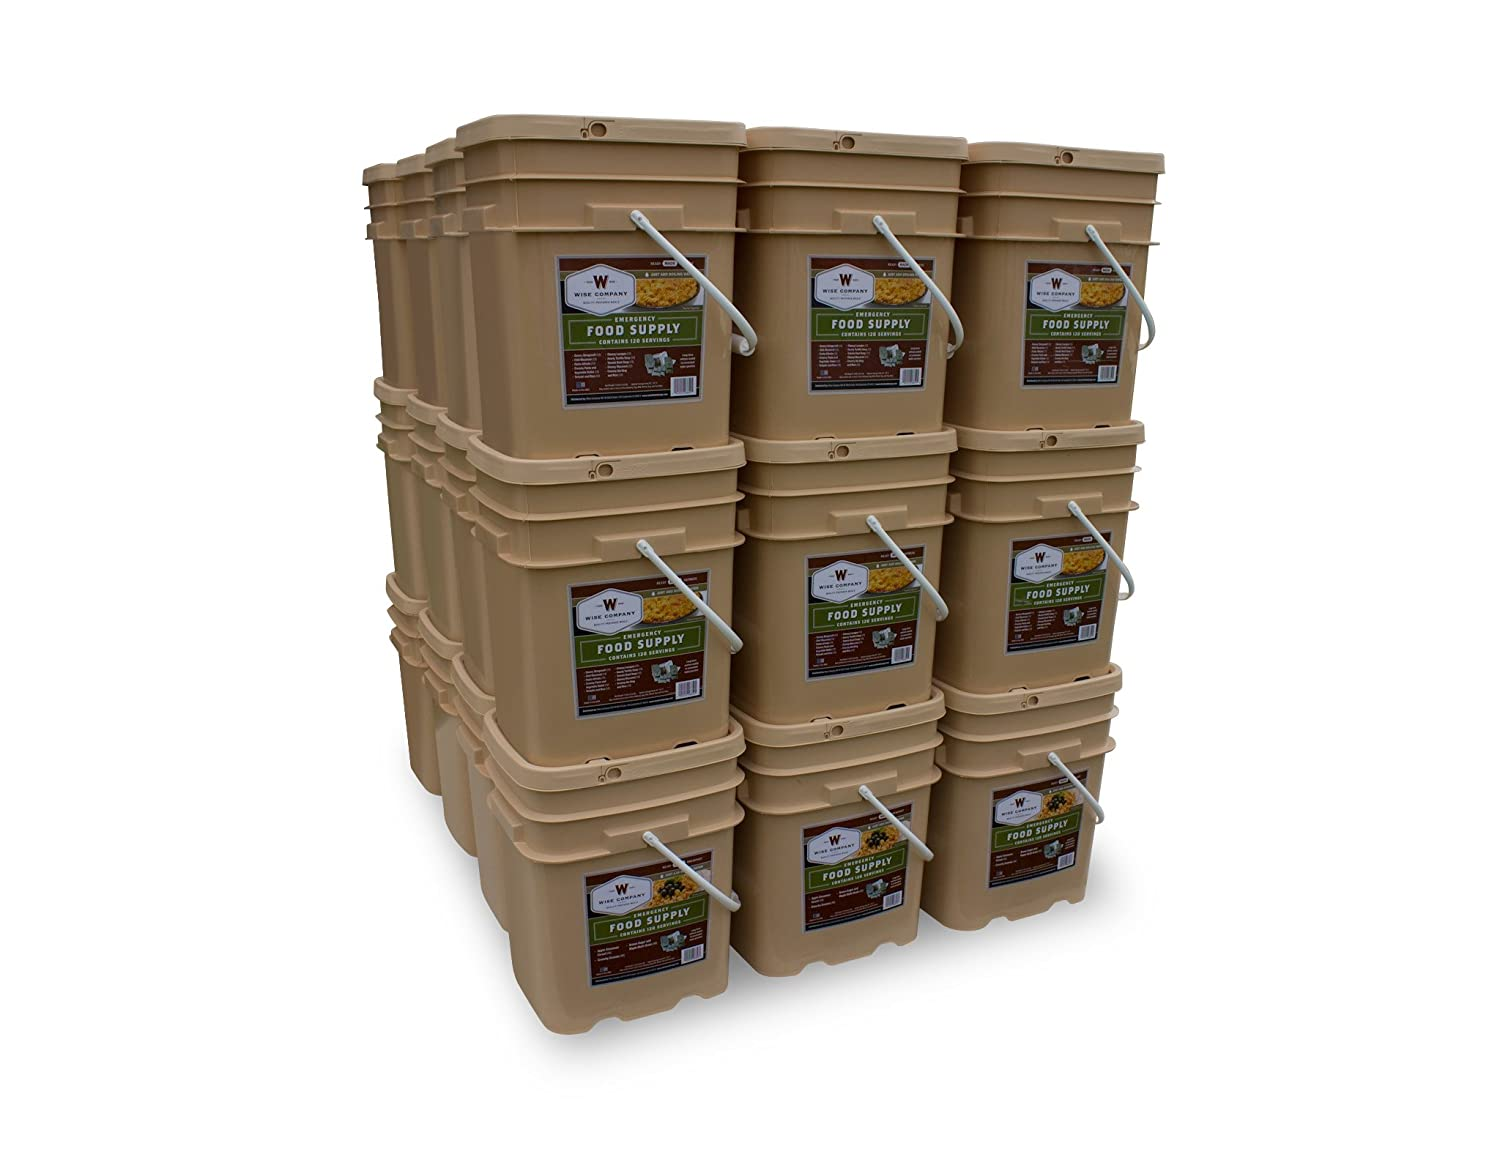 Amazon.com  Wise Company 4320 Serving Package (744-Pounds 36-Buckets)  C&ing Freeze Dried Food  Sports u0026 Outdoors  sc 1 st  Amazon.com & Amazon.com : Wise Company 4320 Serving Package (744-Pounds 36 ...